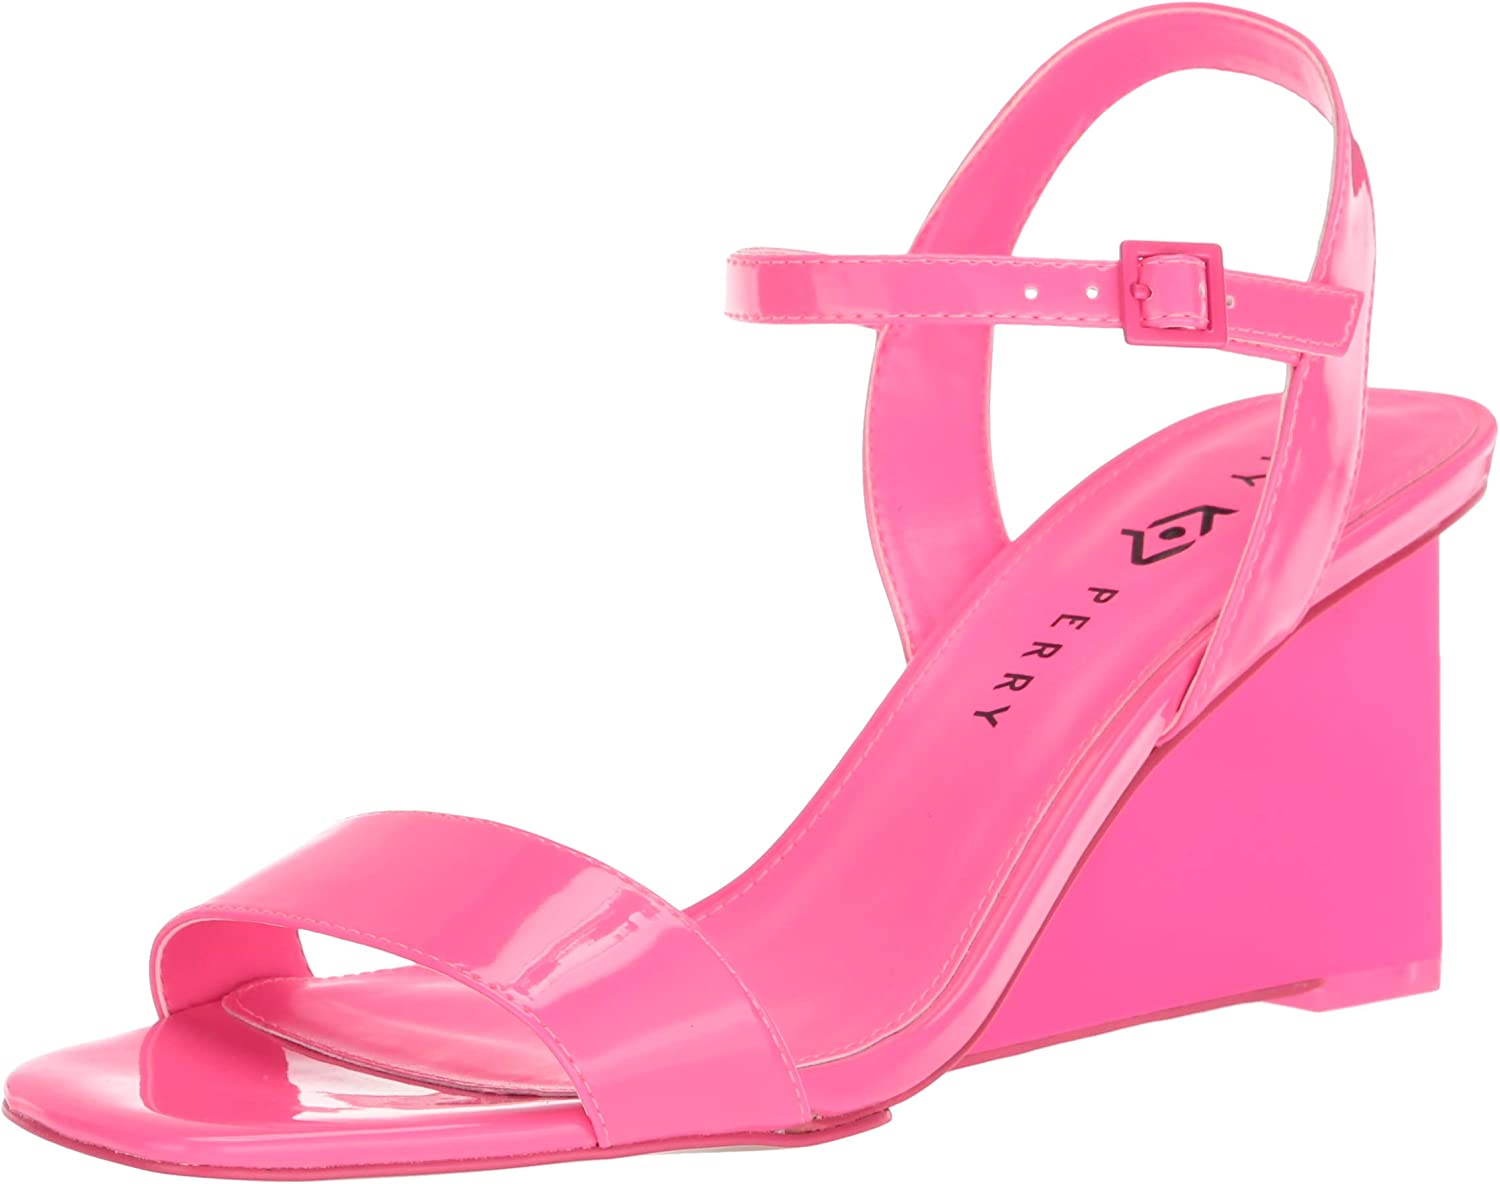 Katy Perry Free Shipping New Women's The Wedge Direct sale of manufacturer Sandal Ira